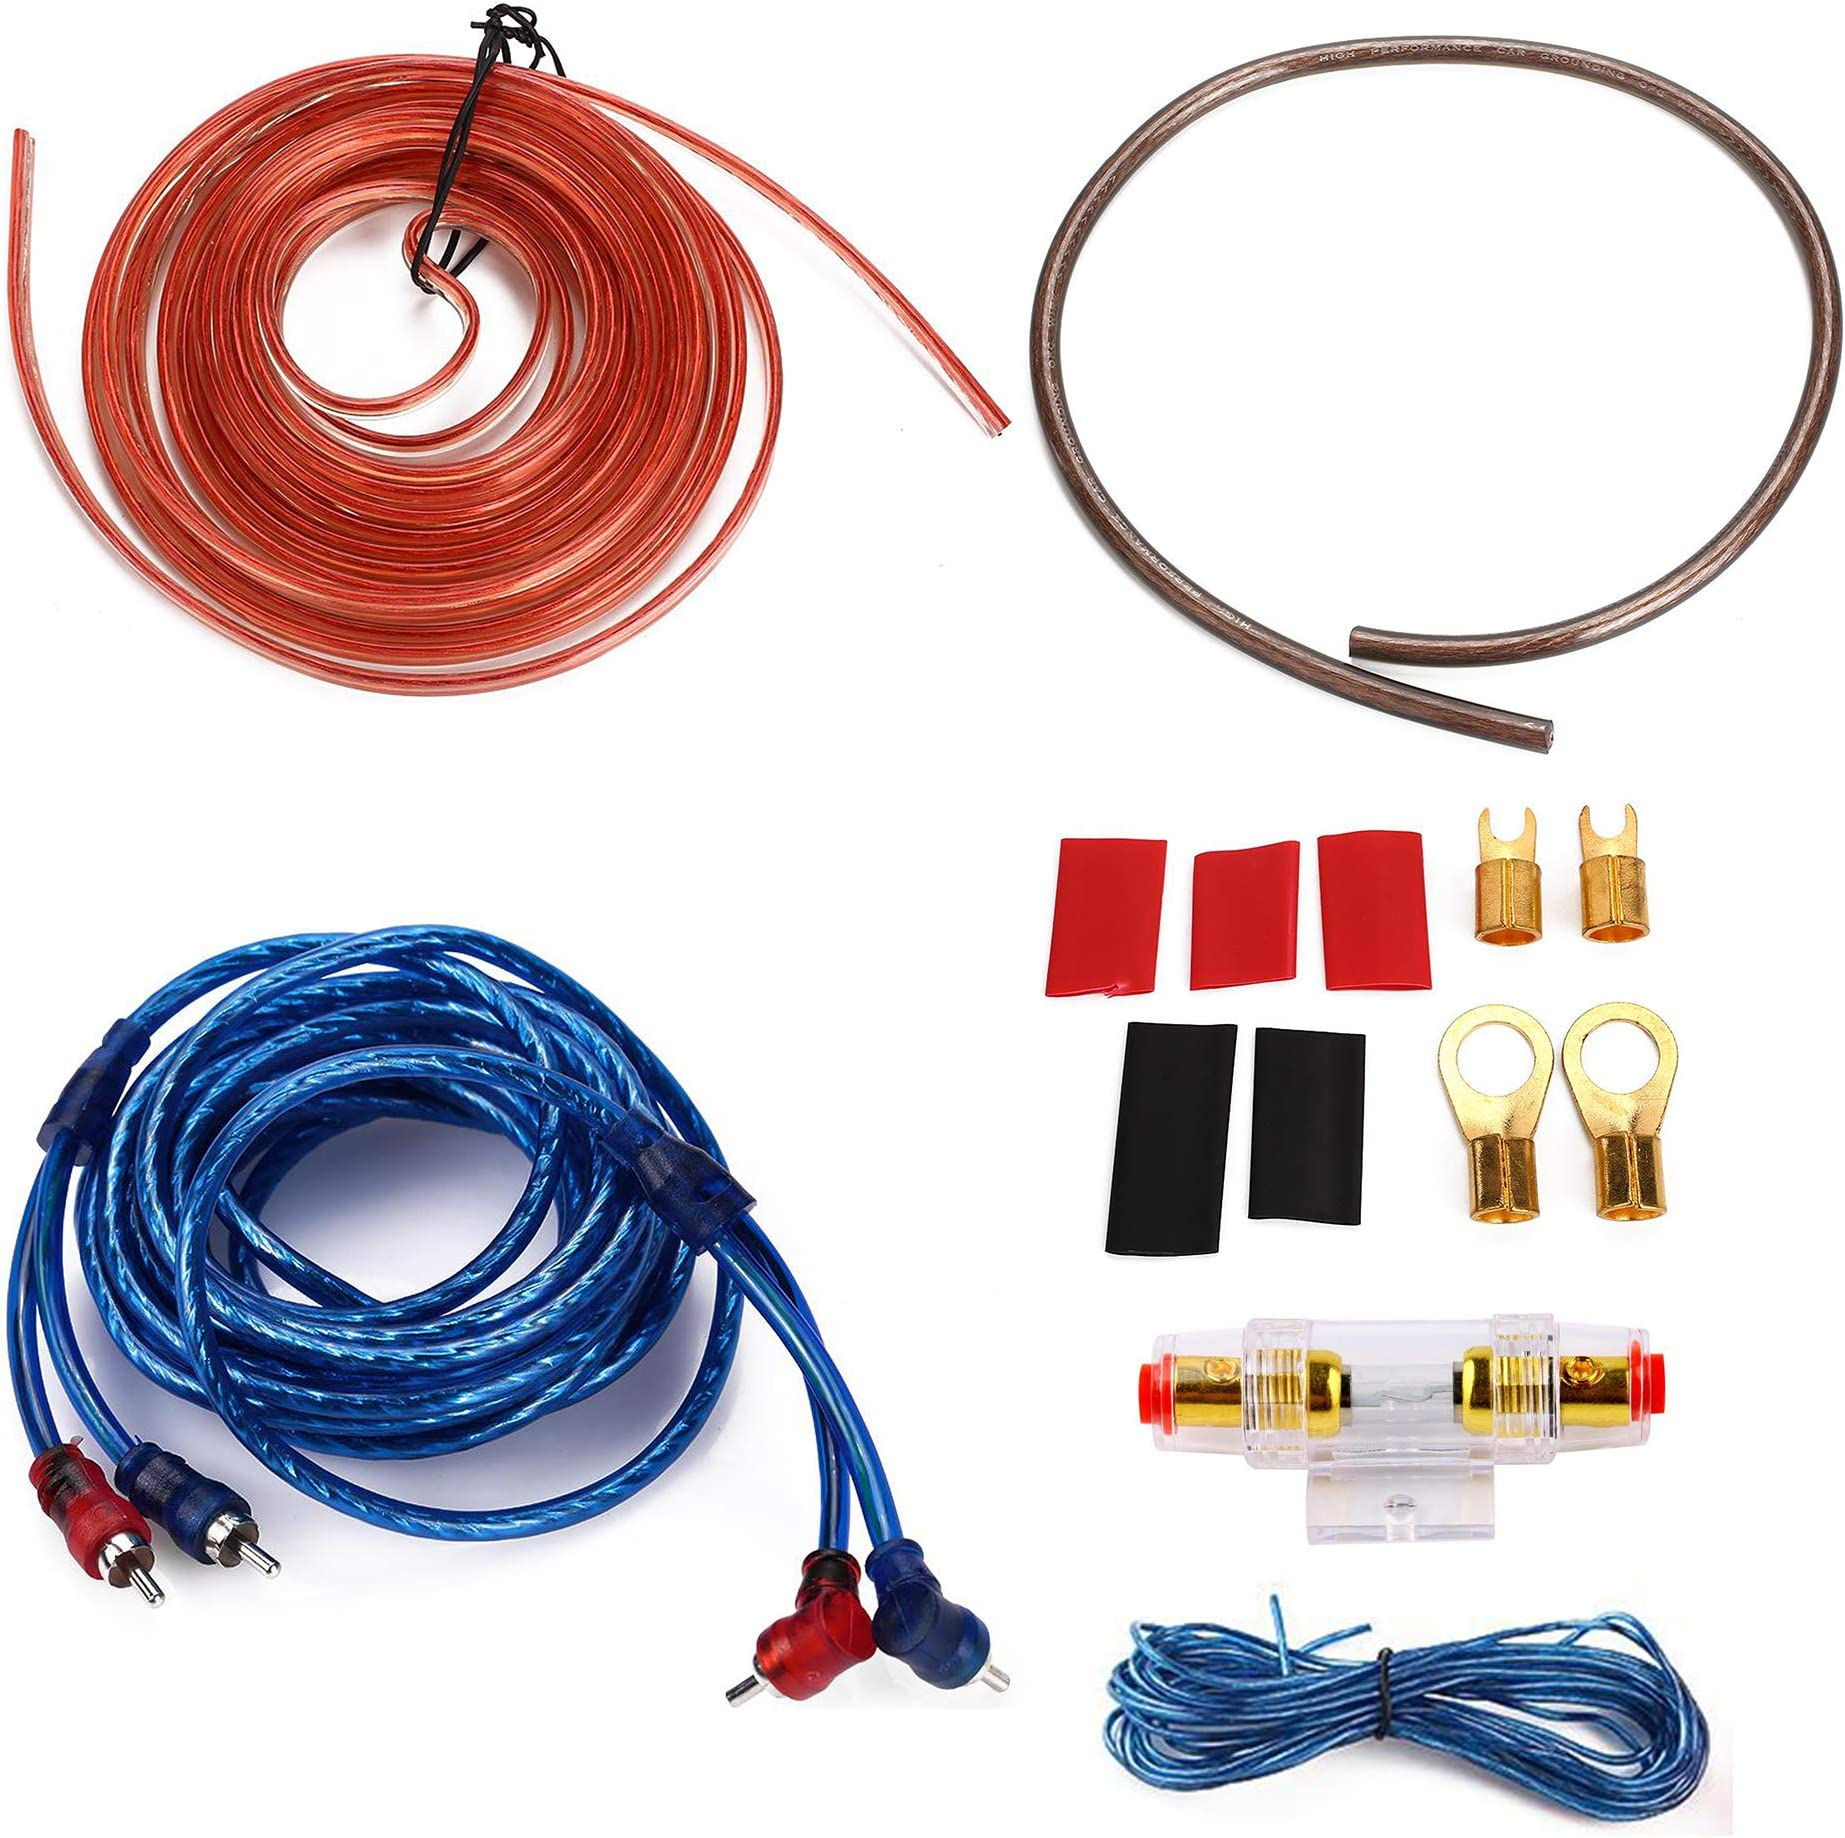 Wiring Kit Car Cable Kits Auto Amp Pvc Insulation Simple Cheap Amplifier Amazon Com Wire Red Performance Price13 99